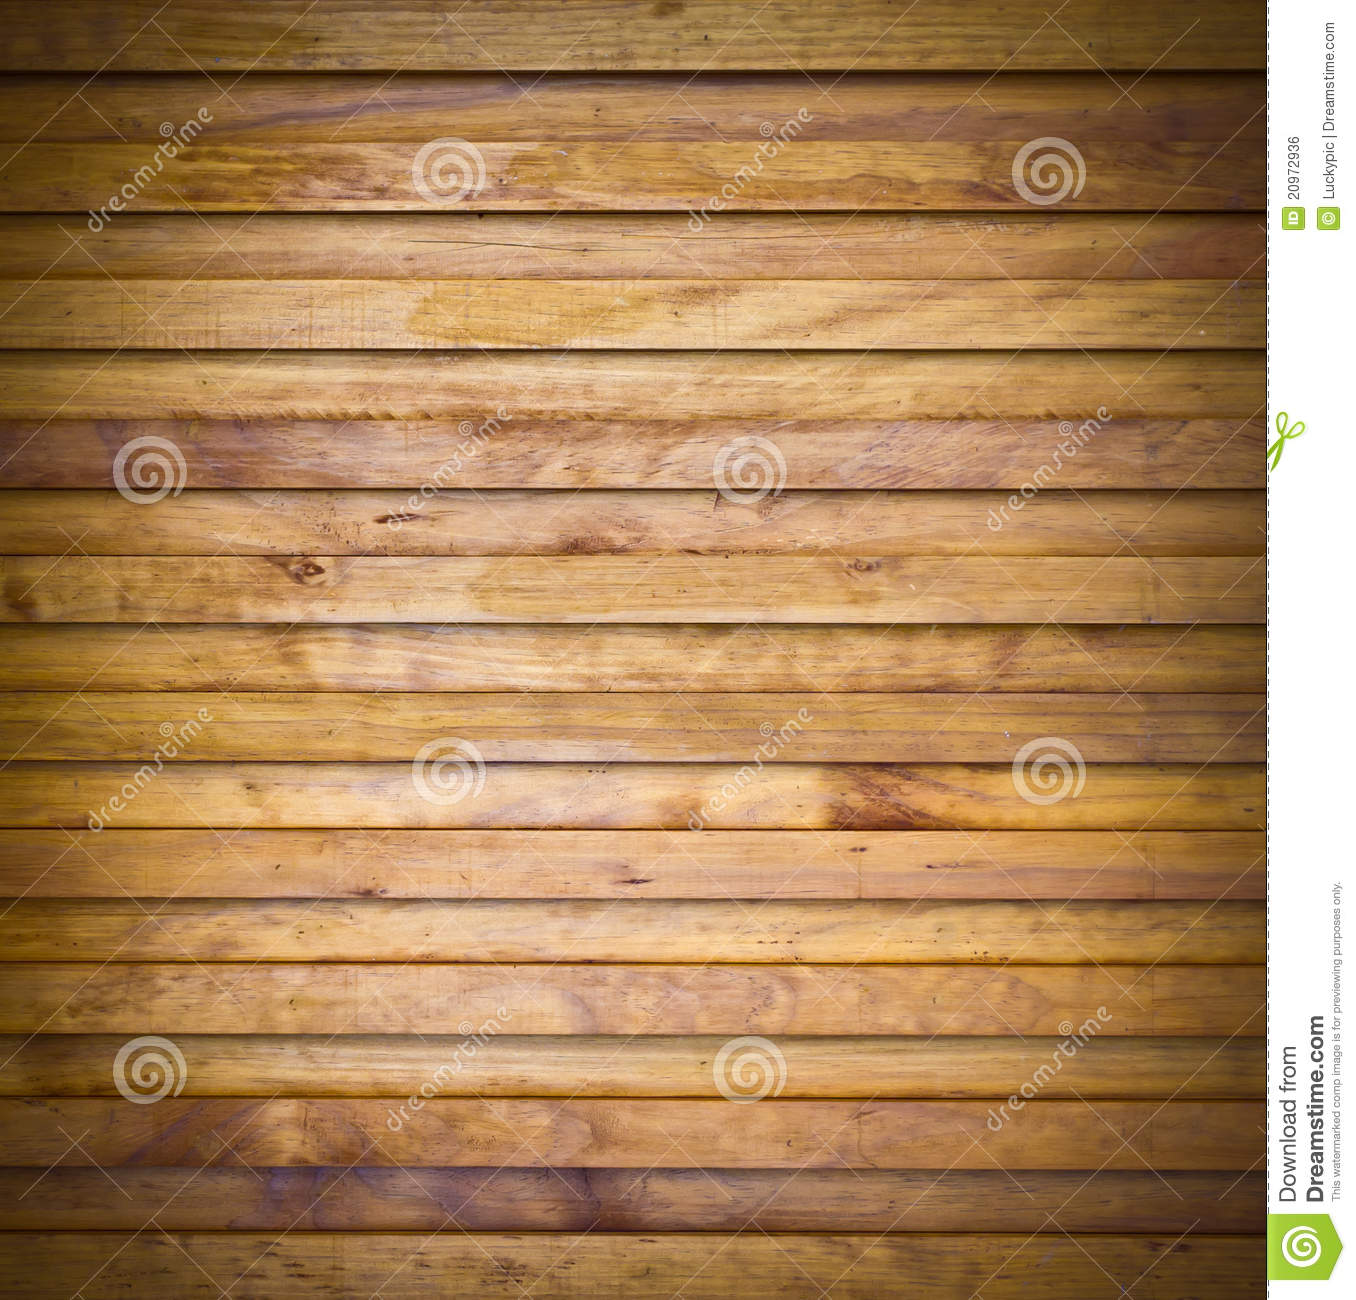 Wood Vertical Board Background Texture Royalty Free Stock